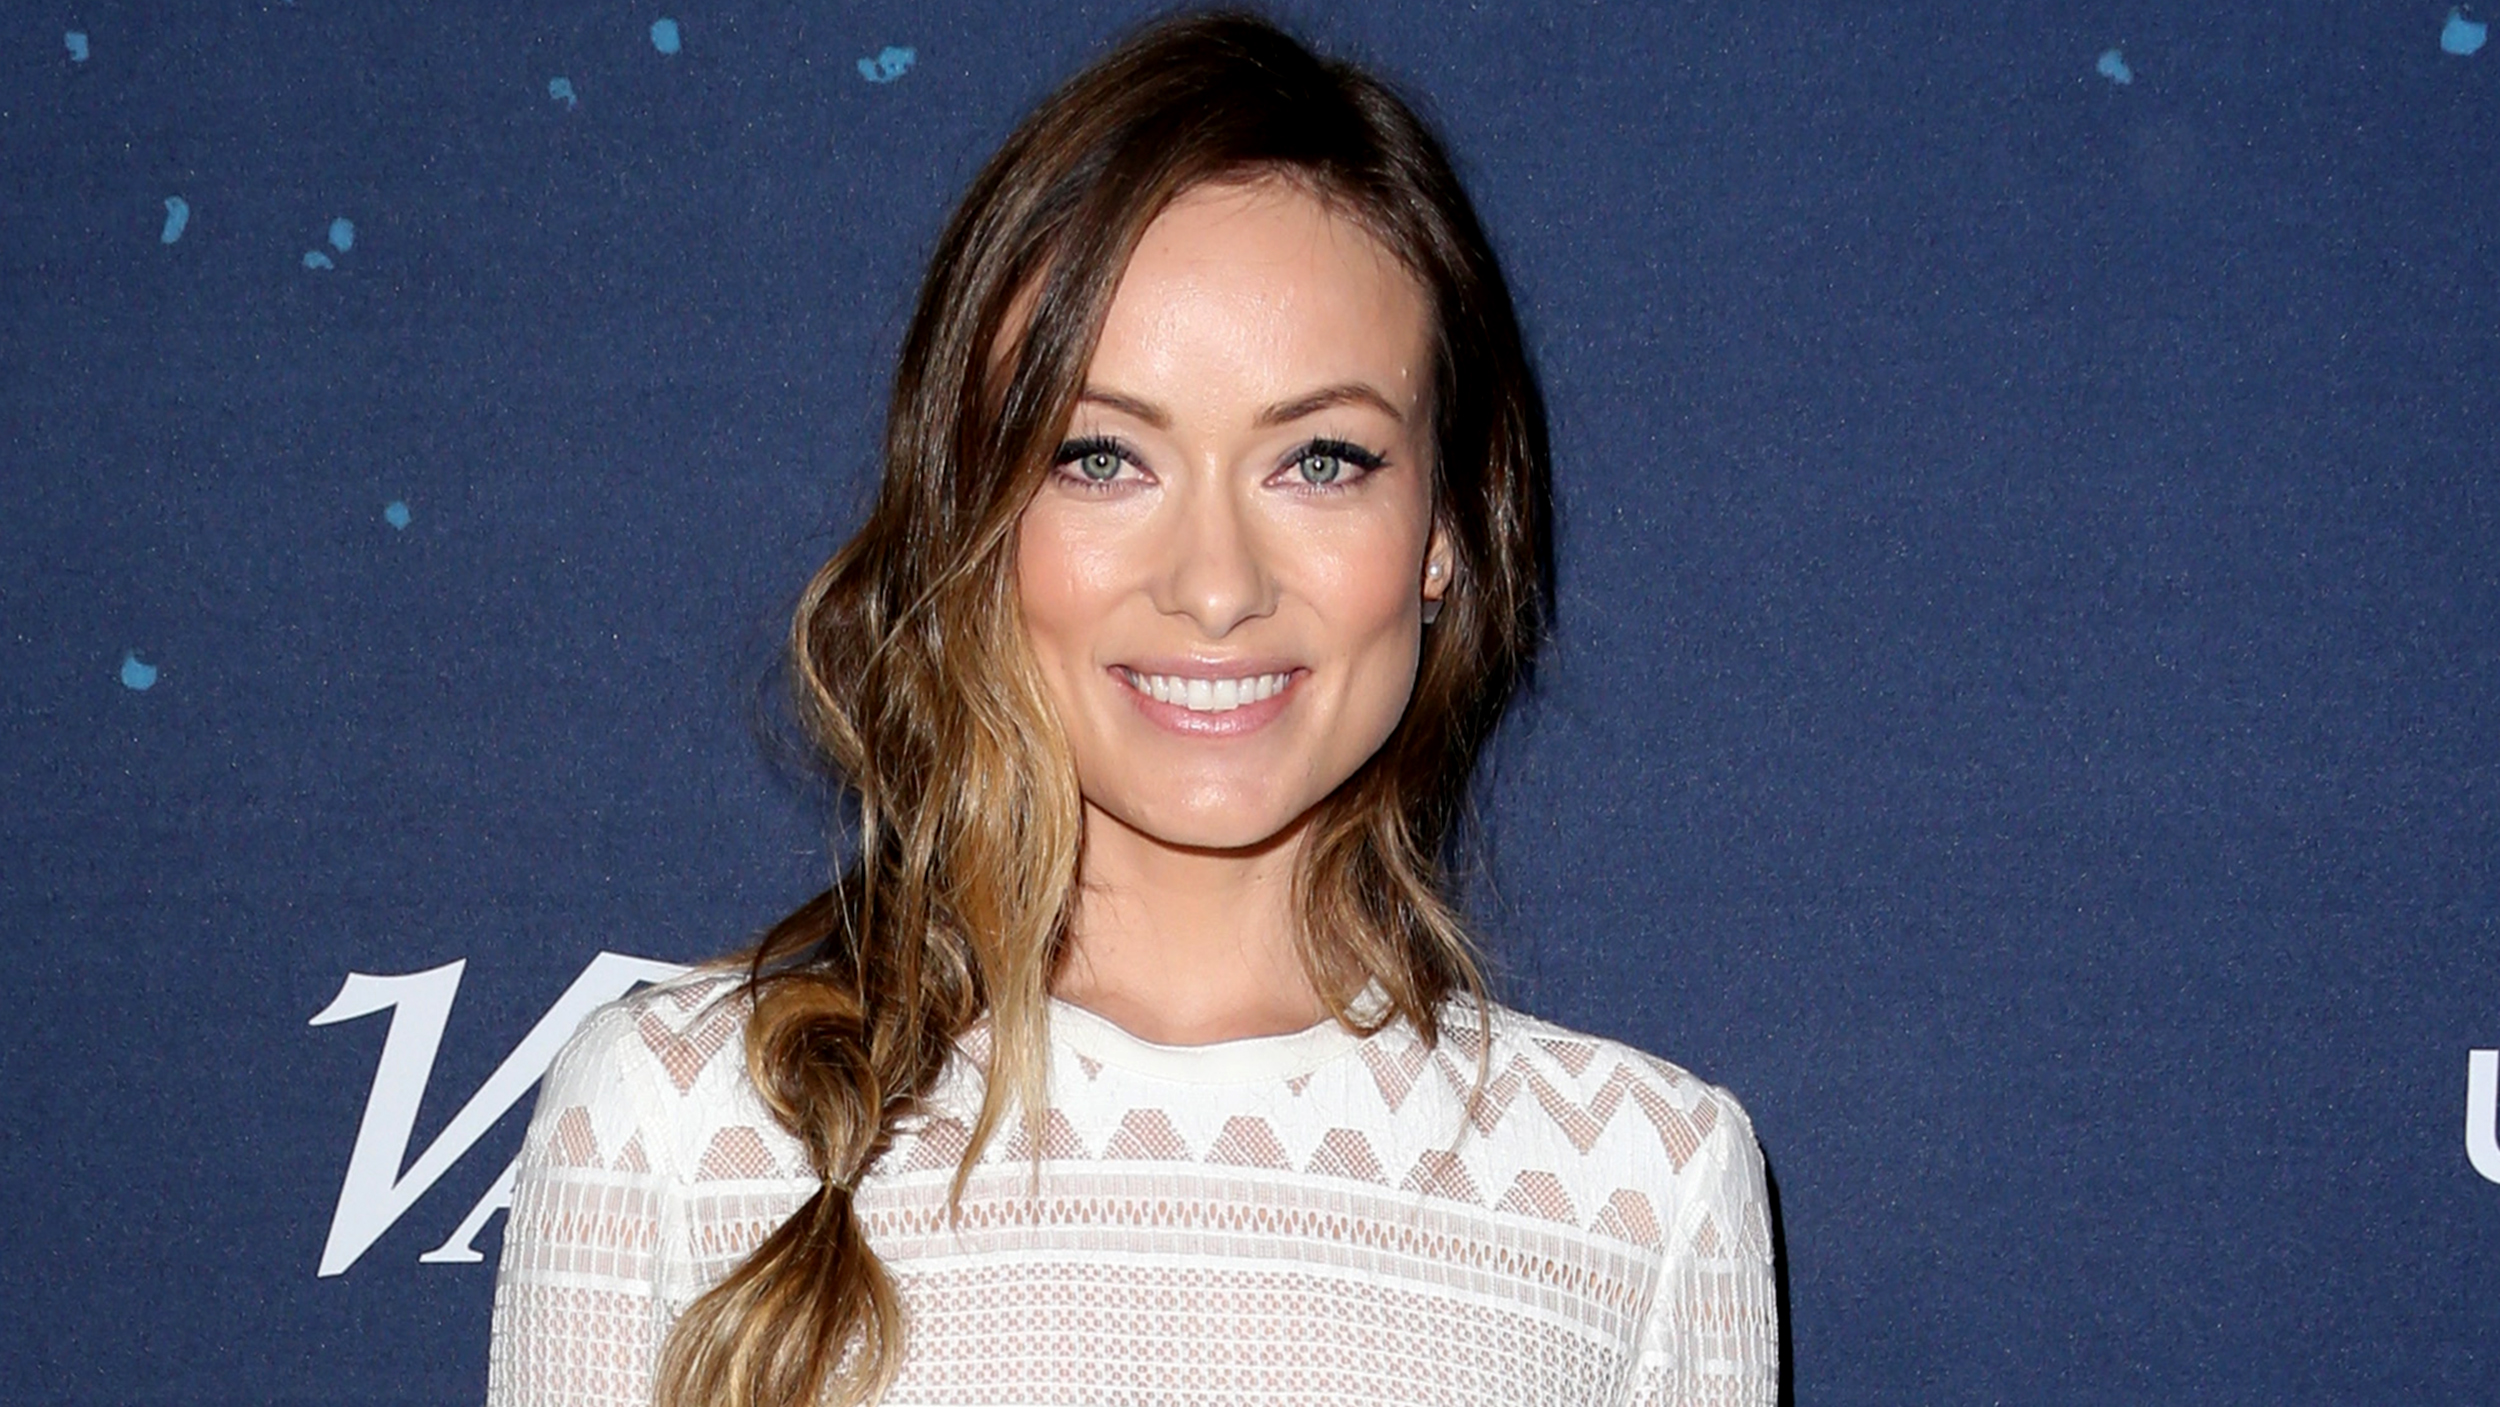 Smile See Olivia Wilde S Adorable Photo Of Son Otis At